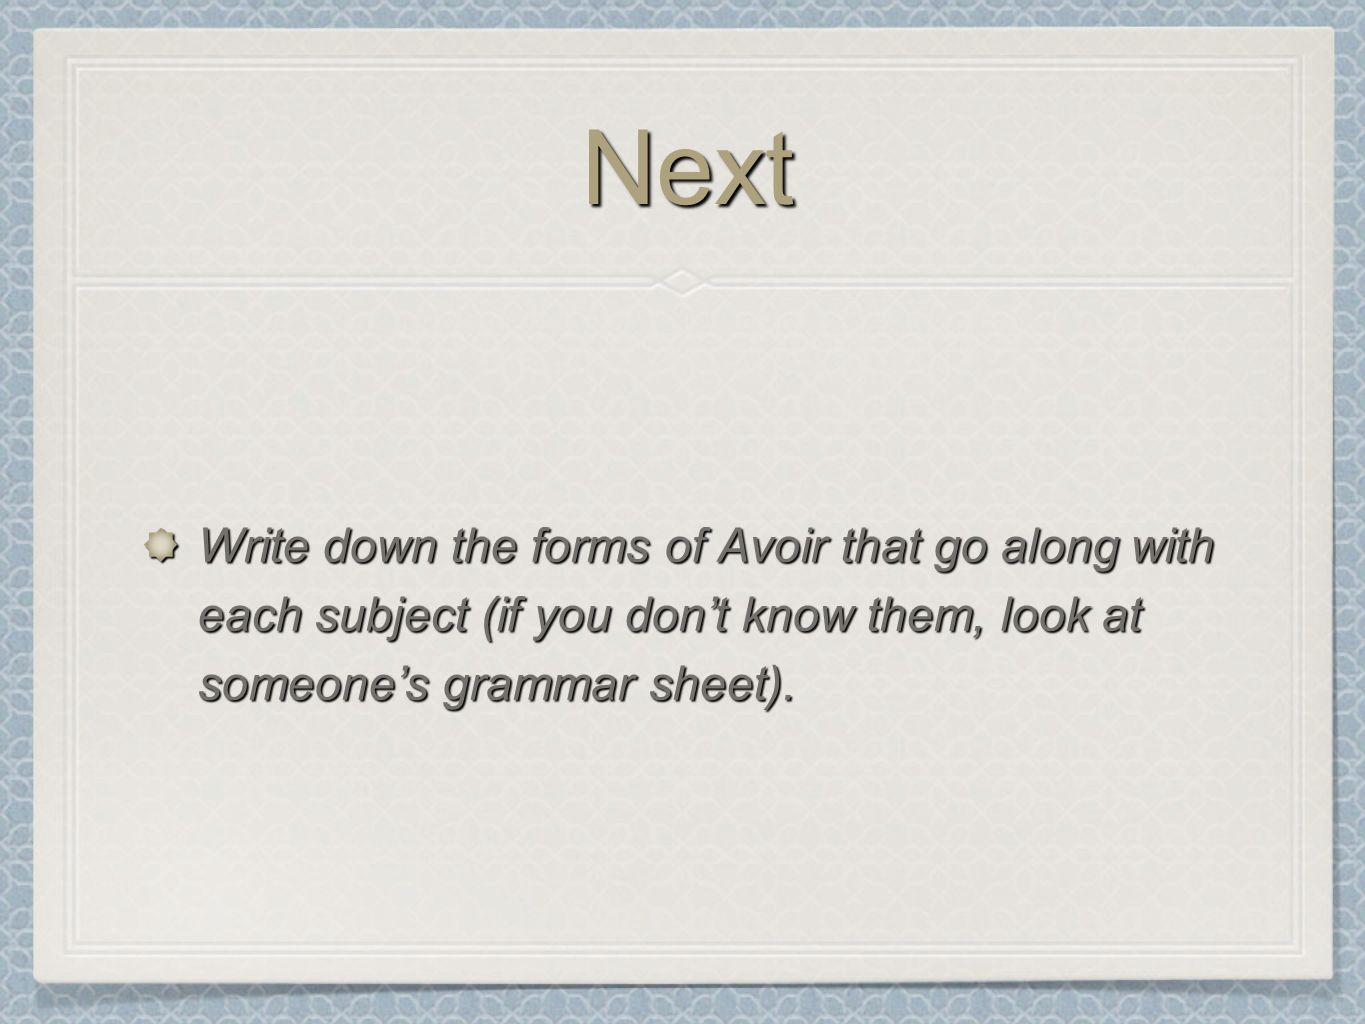 NextNext Write down the forms of Avoir that go along with each subject (if you dont know them, look at someones grammar sheet).